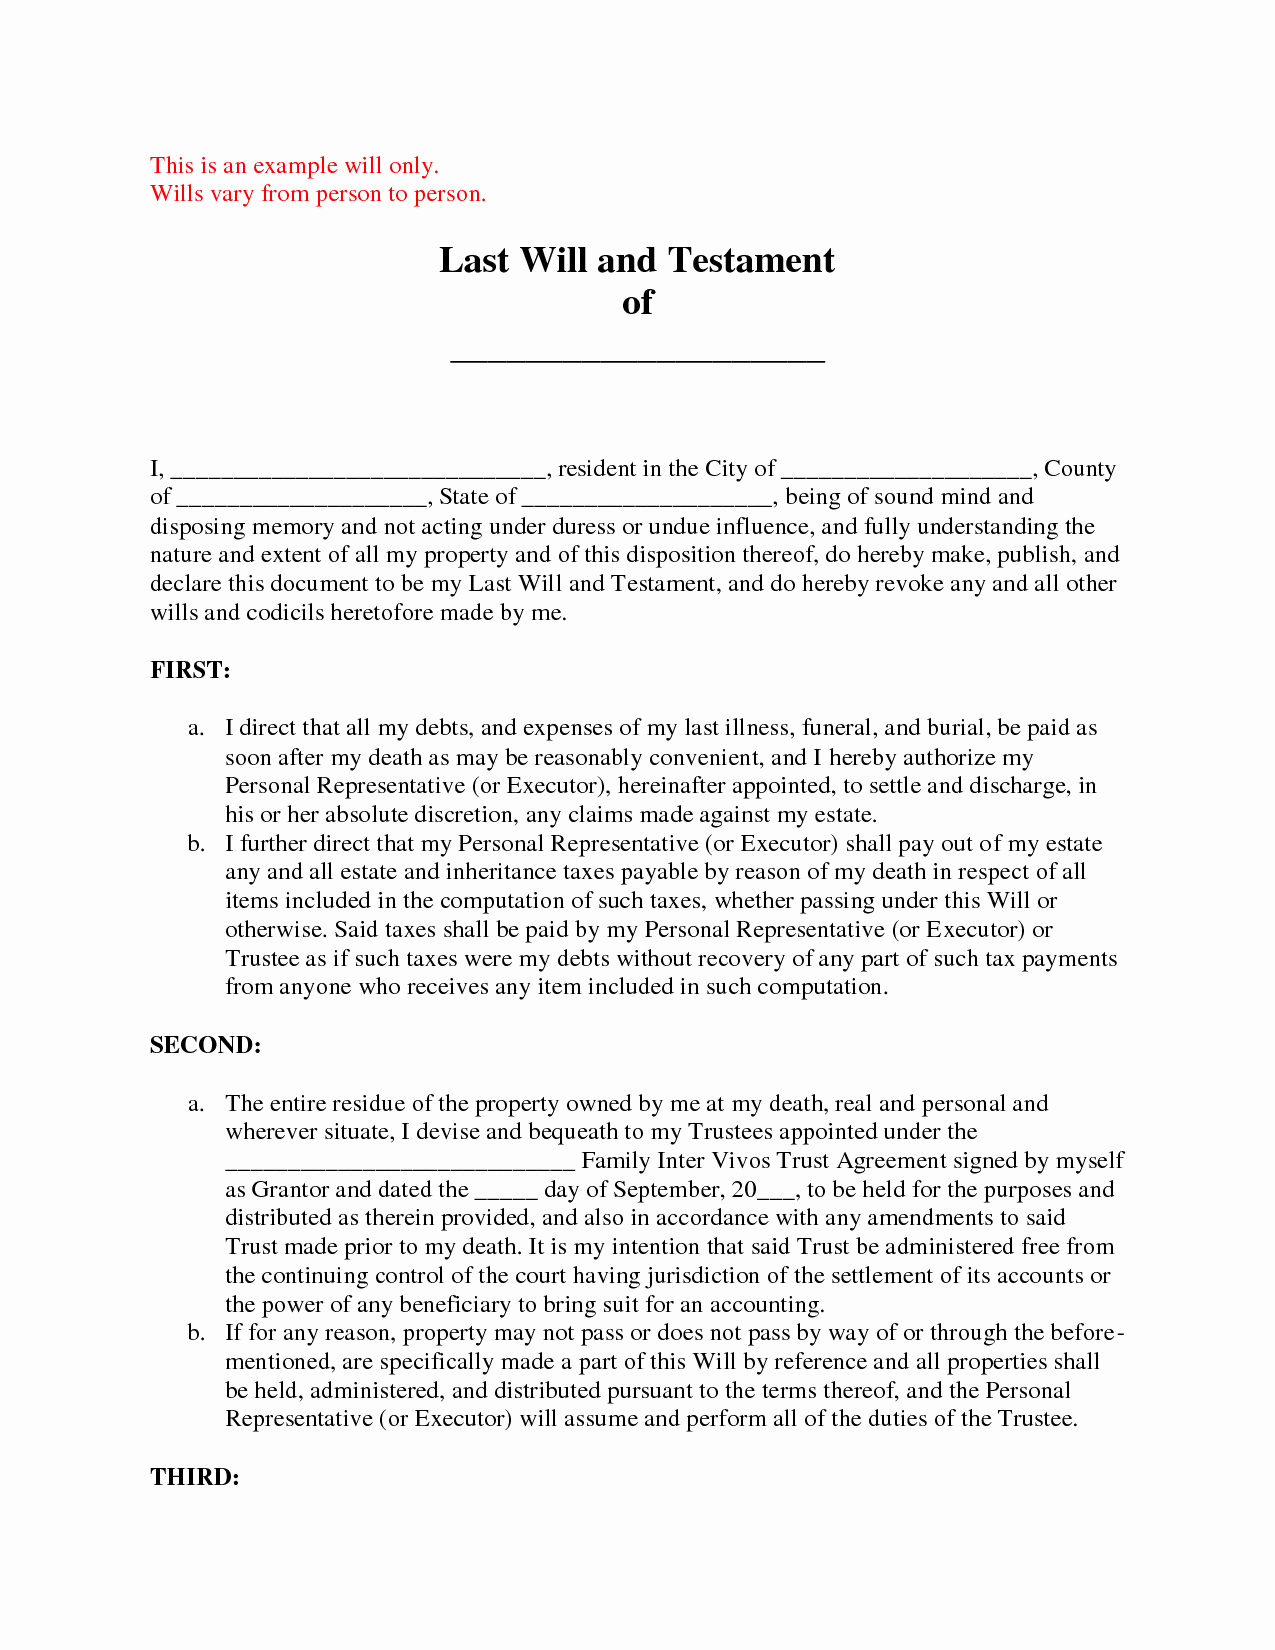 Free Blank Will forms Best Of Unique Free Printable Last Will and Testament Blank forms